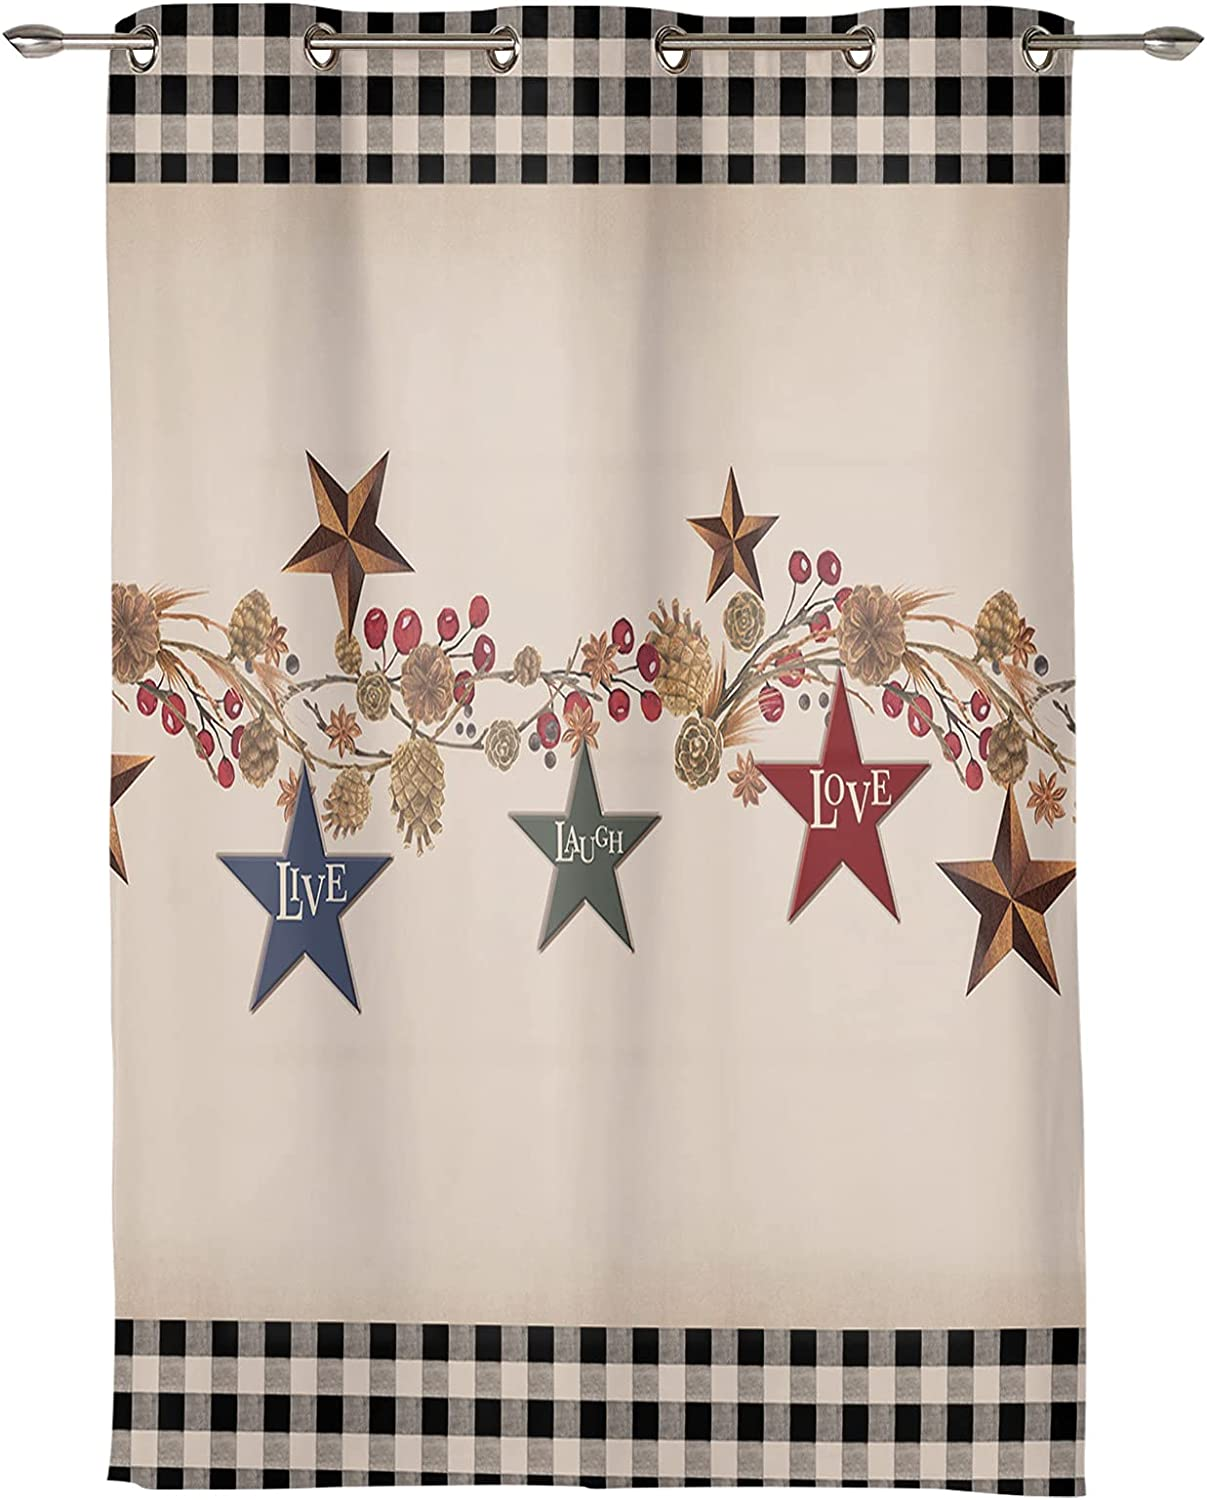 Rustic American Berry Outstanding specialty shop Live Laugh Decor Curtain Grommet Love Home